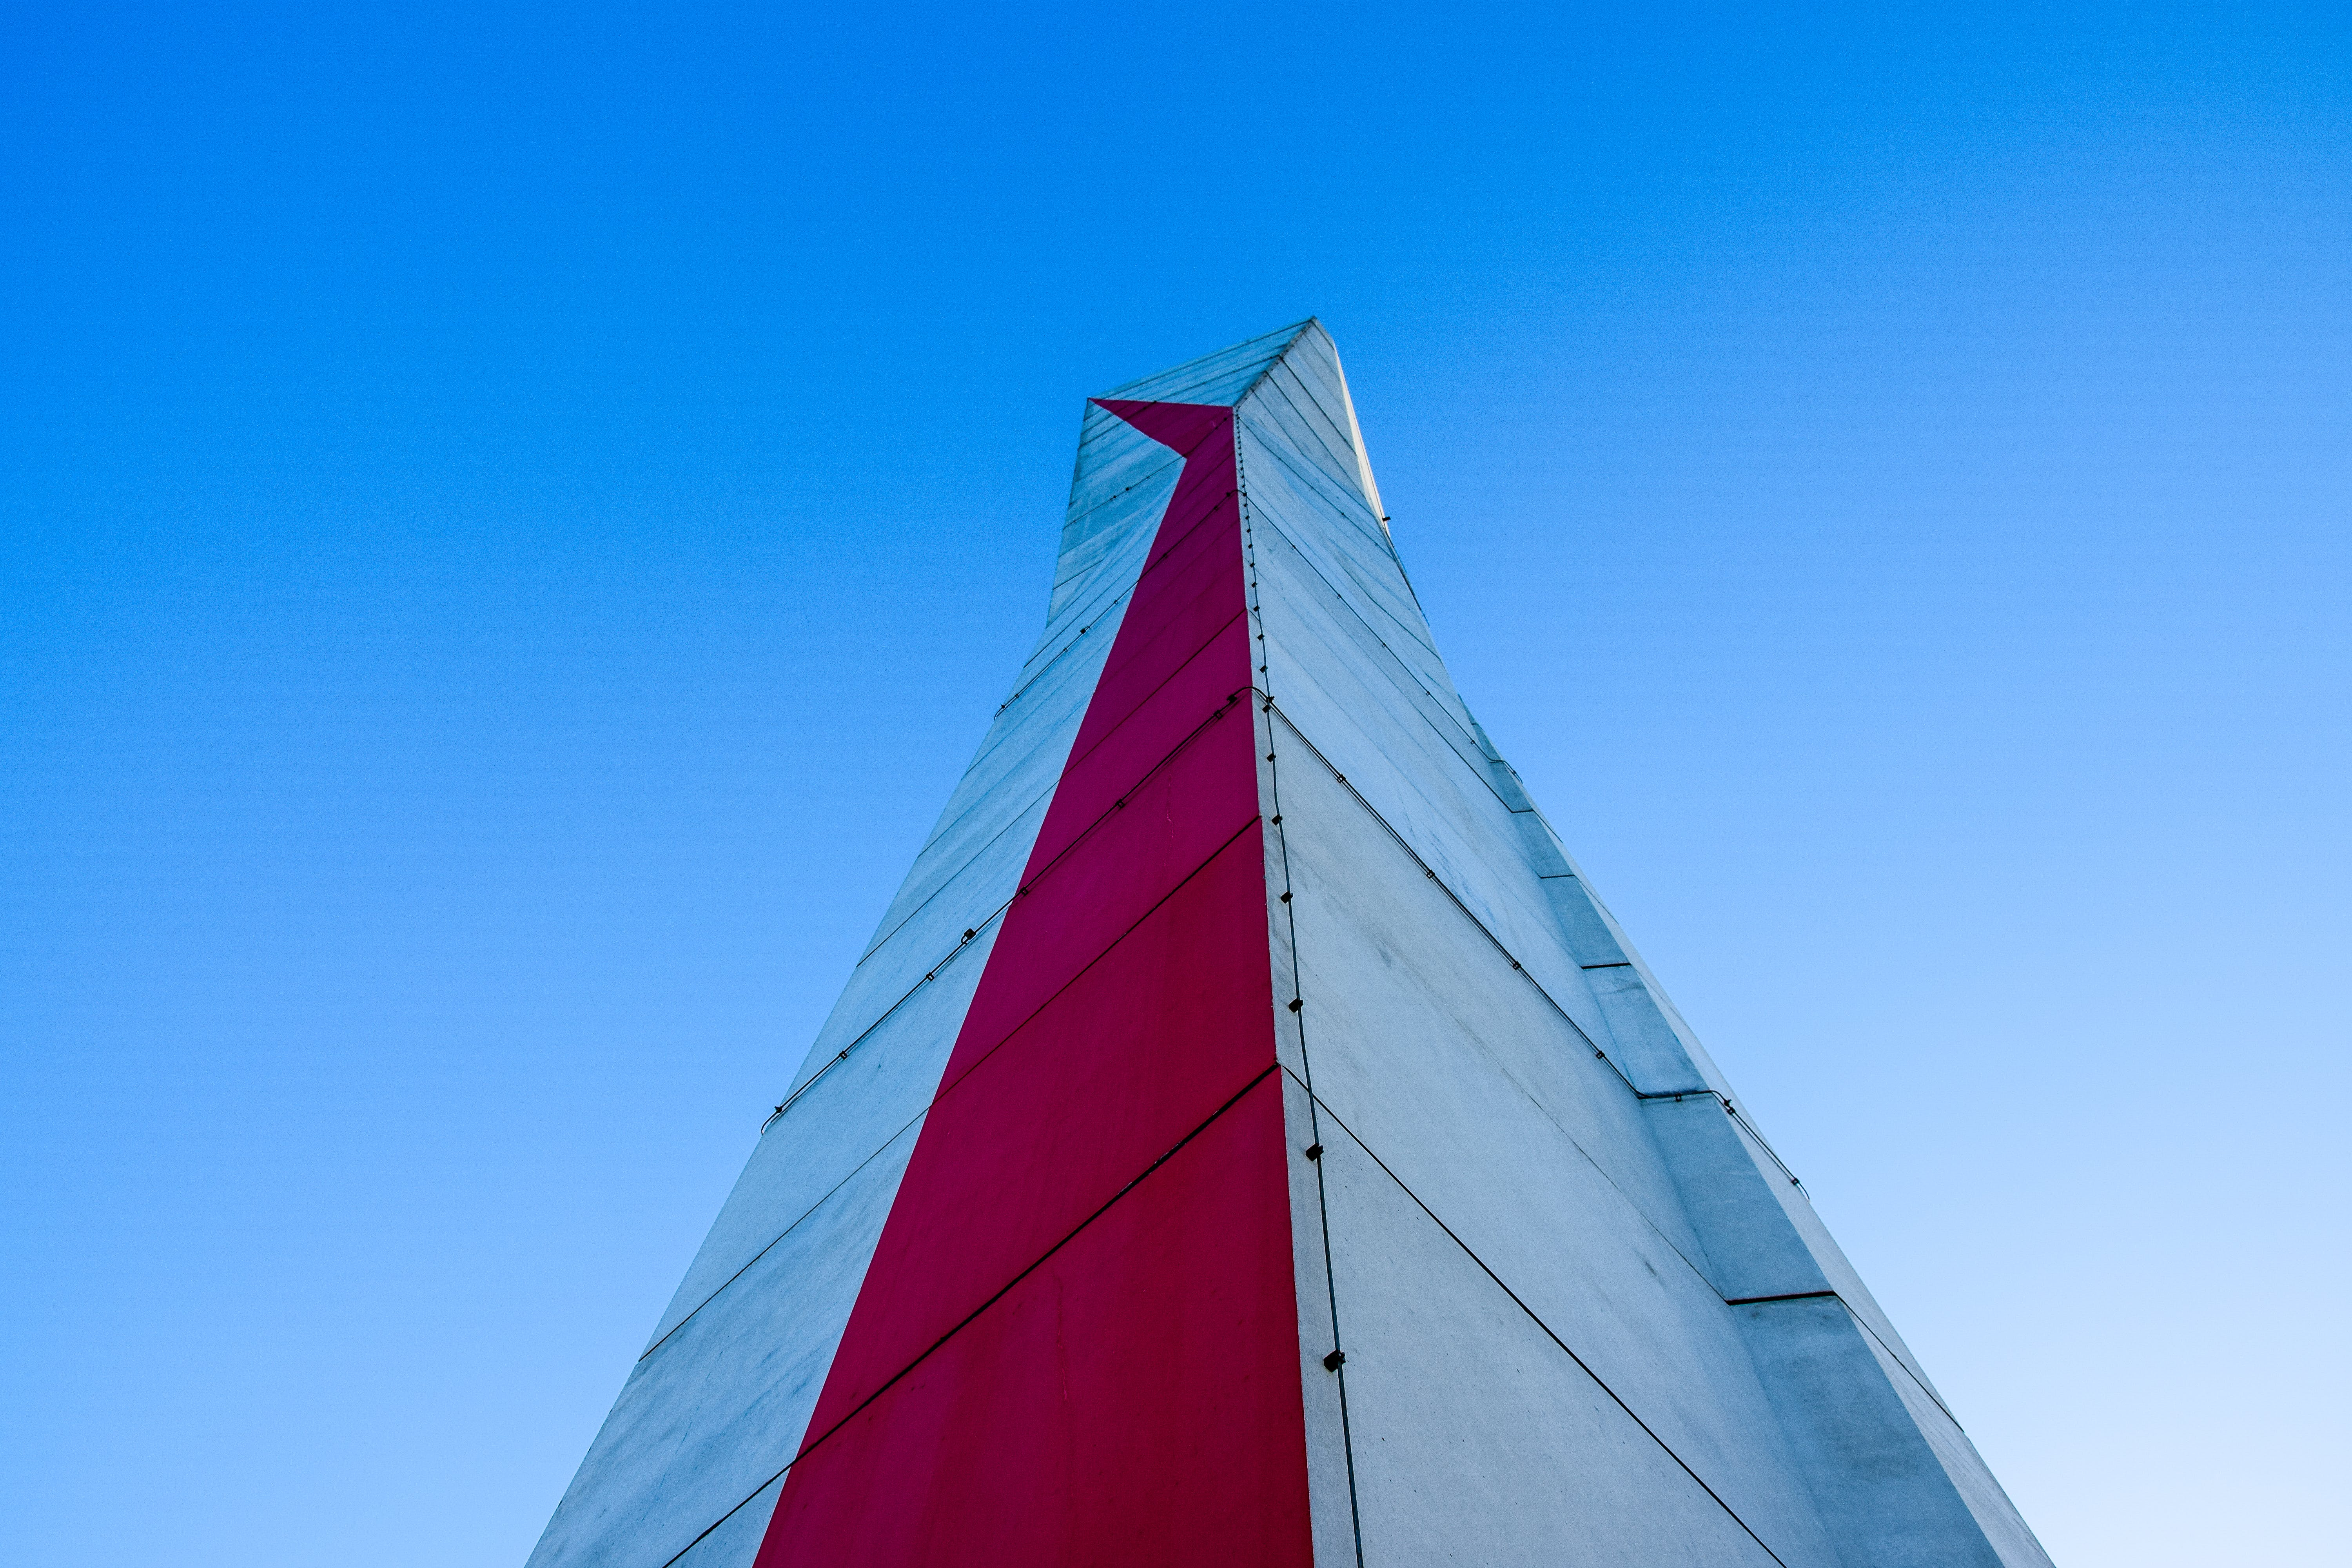 Free stock photo of architecture, blue, blue sky, red